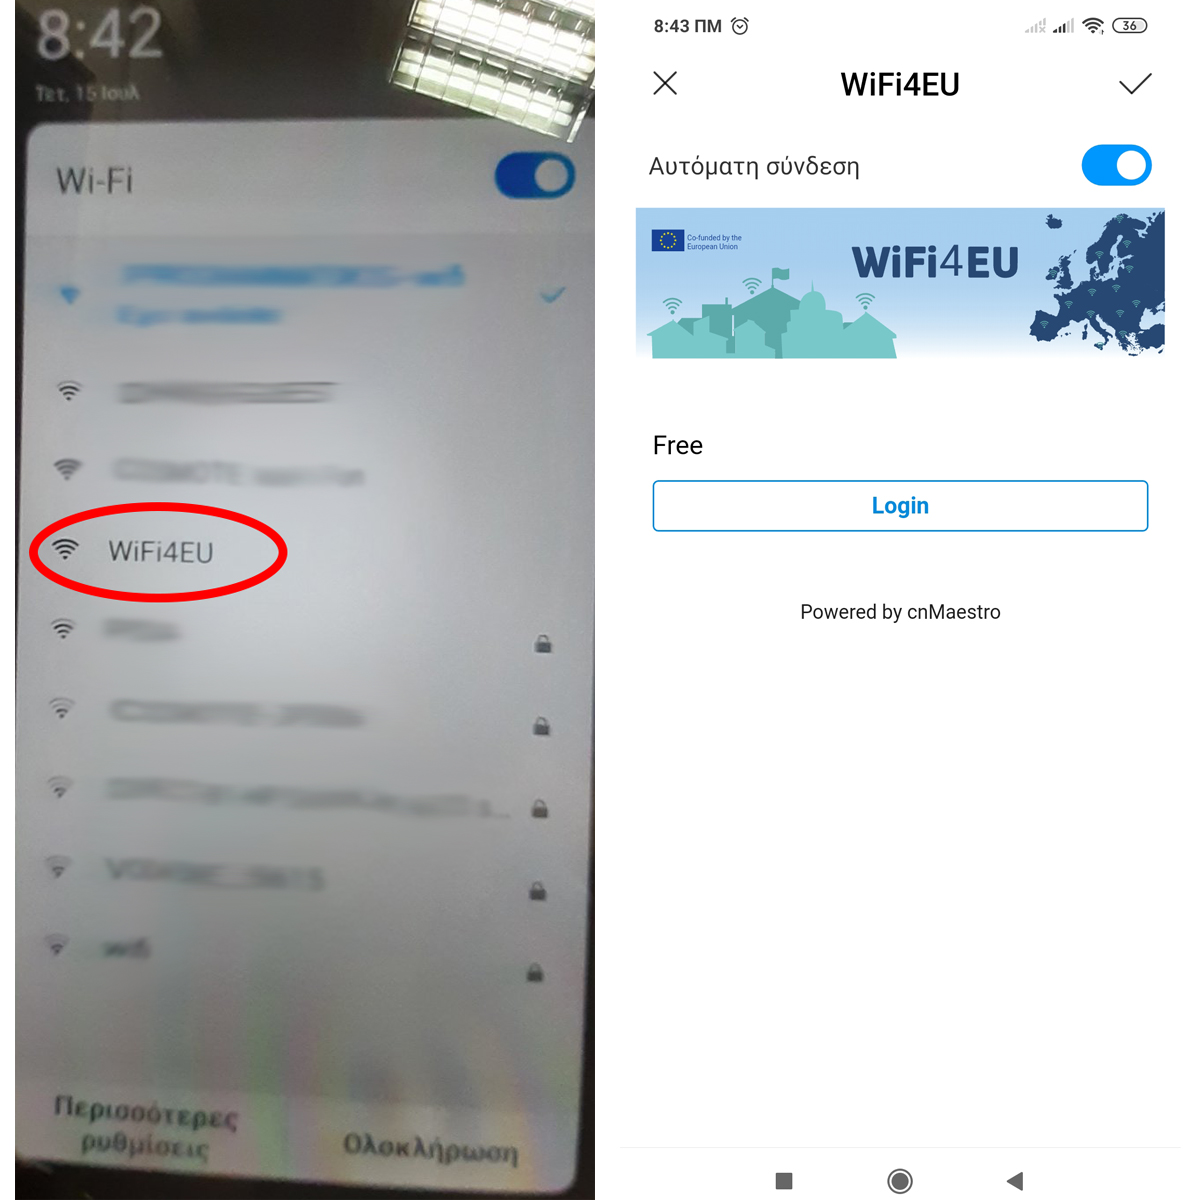 WiFi4uLogin